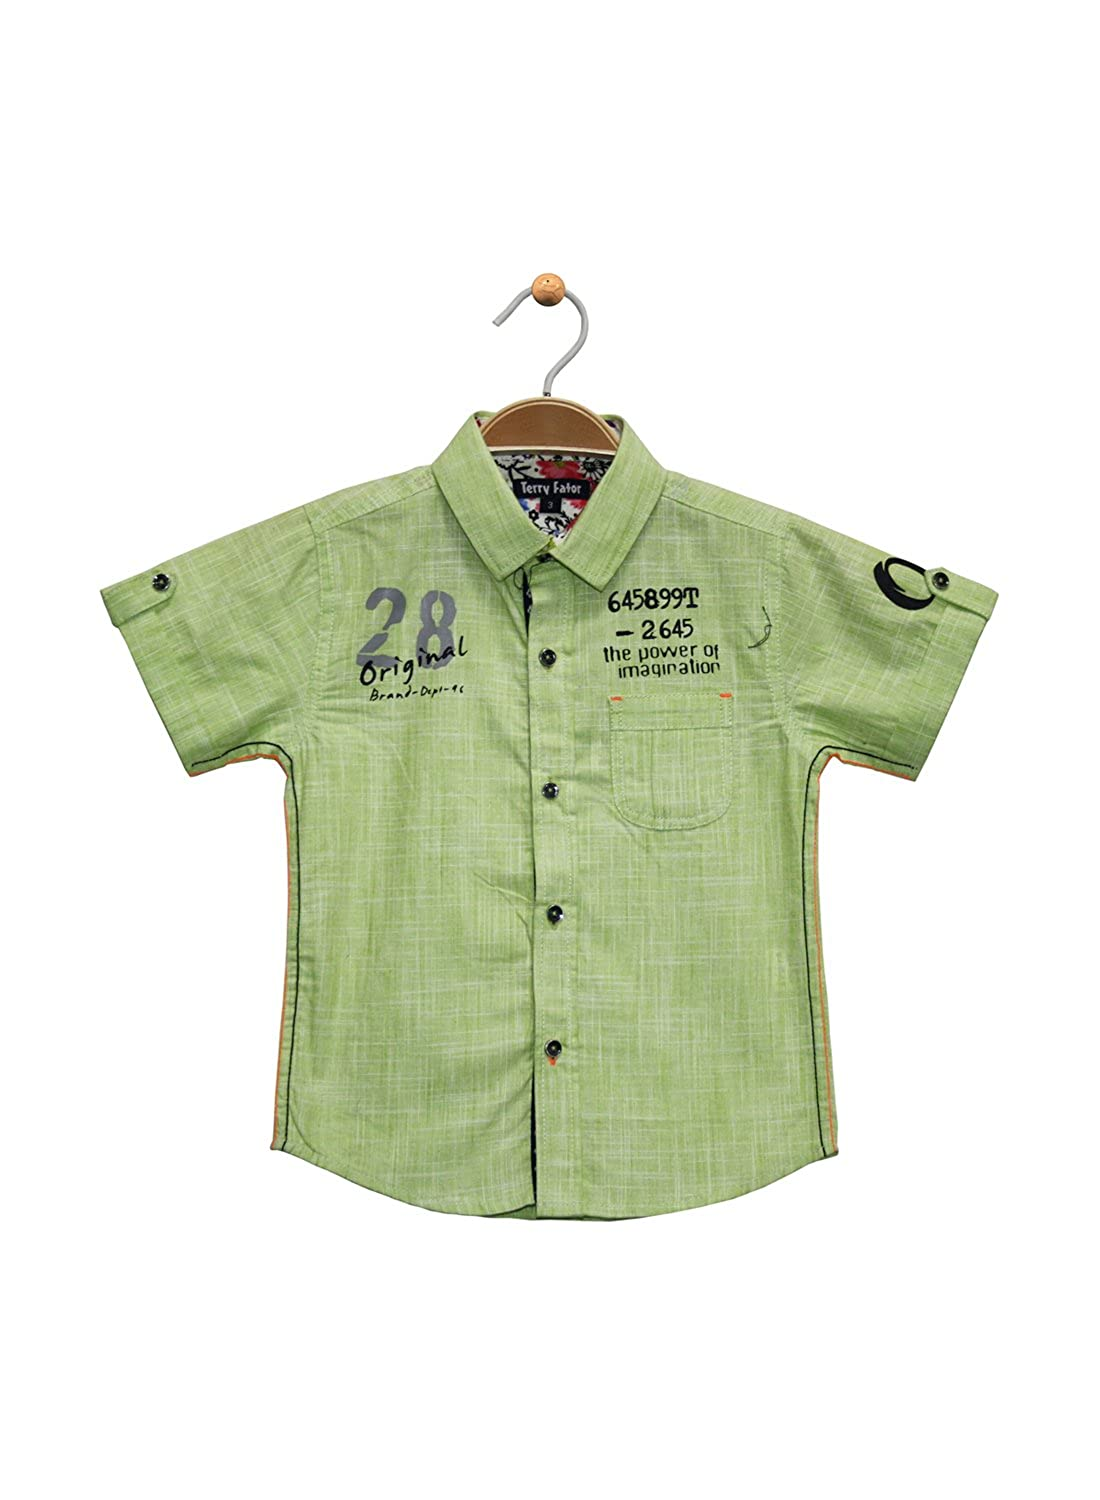 42d2950a Terry Fator Boy's Half Sleeve Printed Cotton Shirt - Green: Amazon.in:  Clothing & Accessories